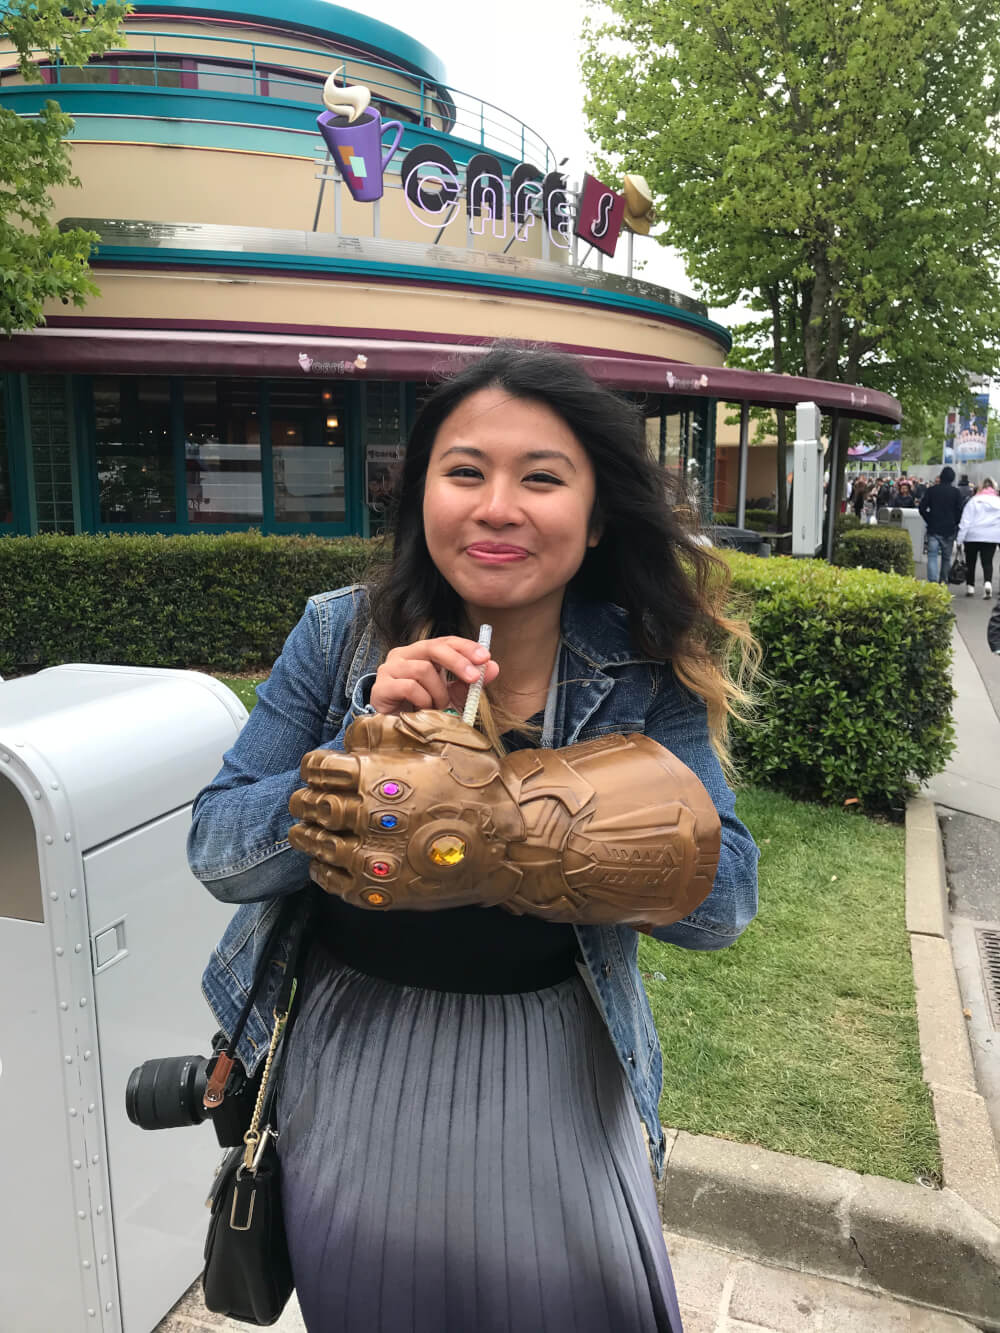 Thanos Infinity Gauntlet sipper at Disneyland Paris during the Marvel Season of Heroes